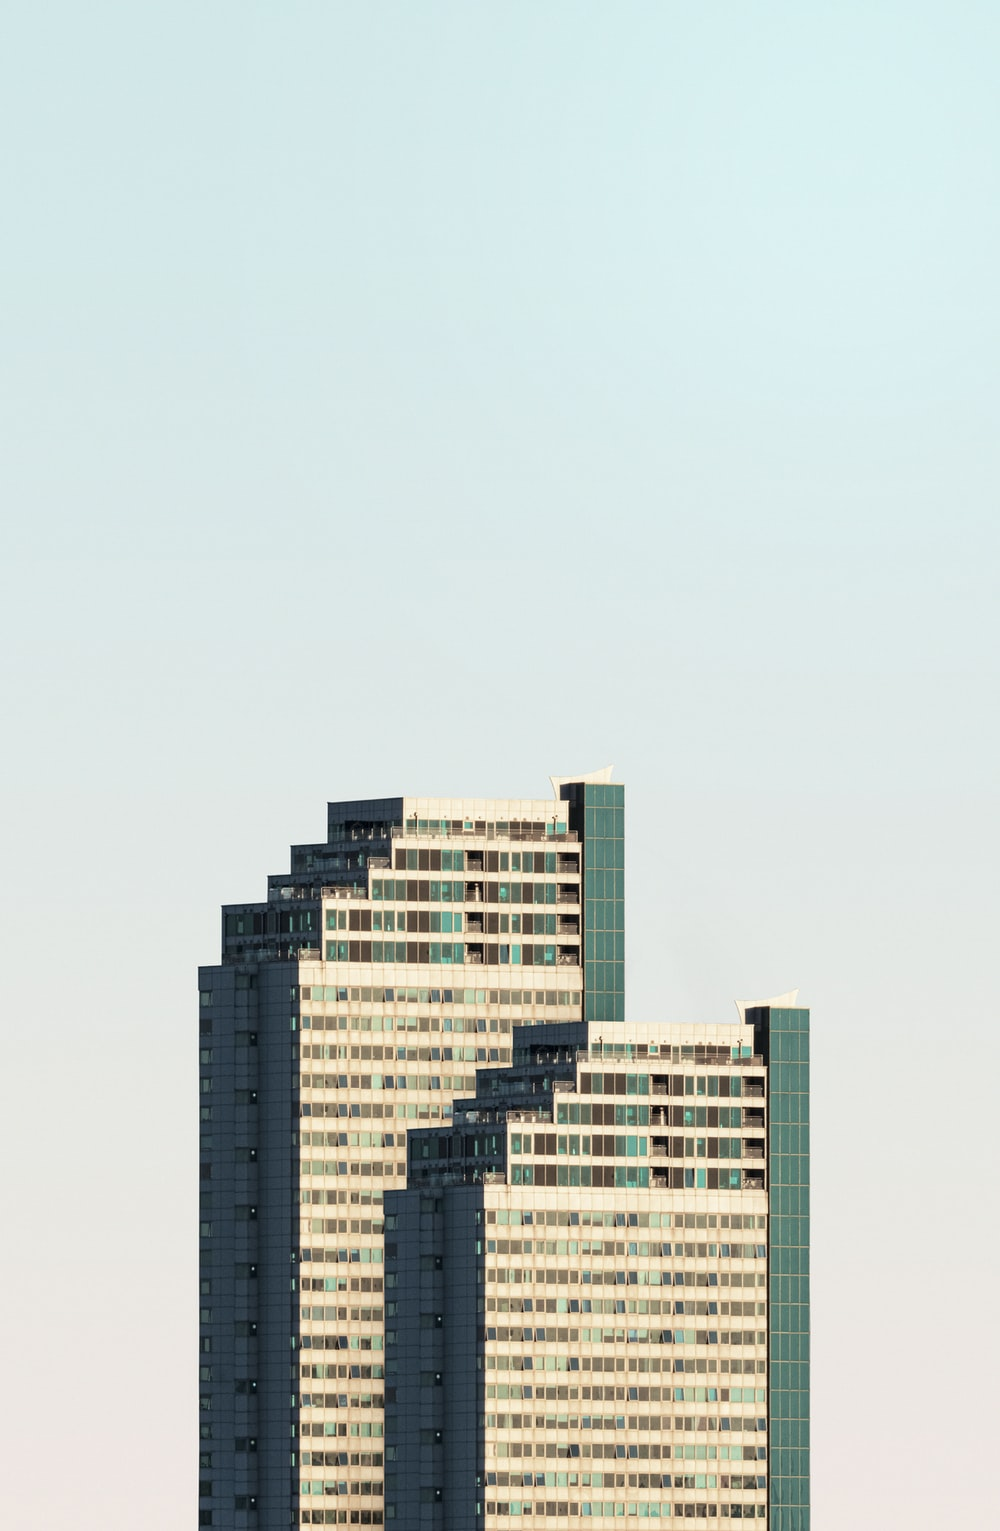 high rise buildings under white sky during daytime